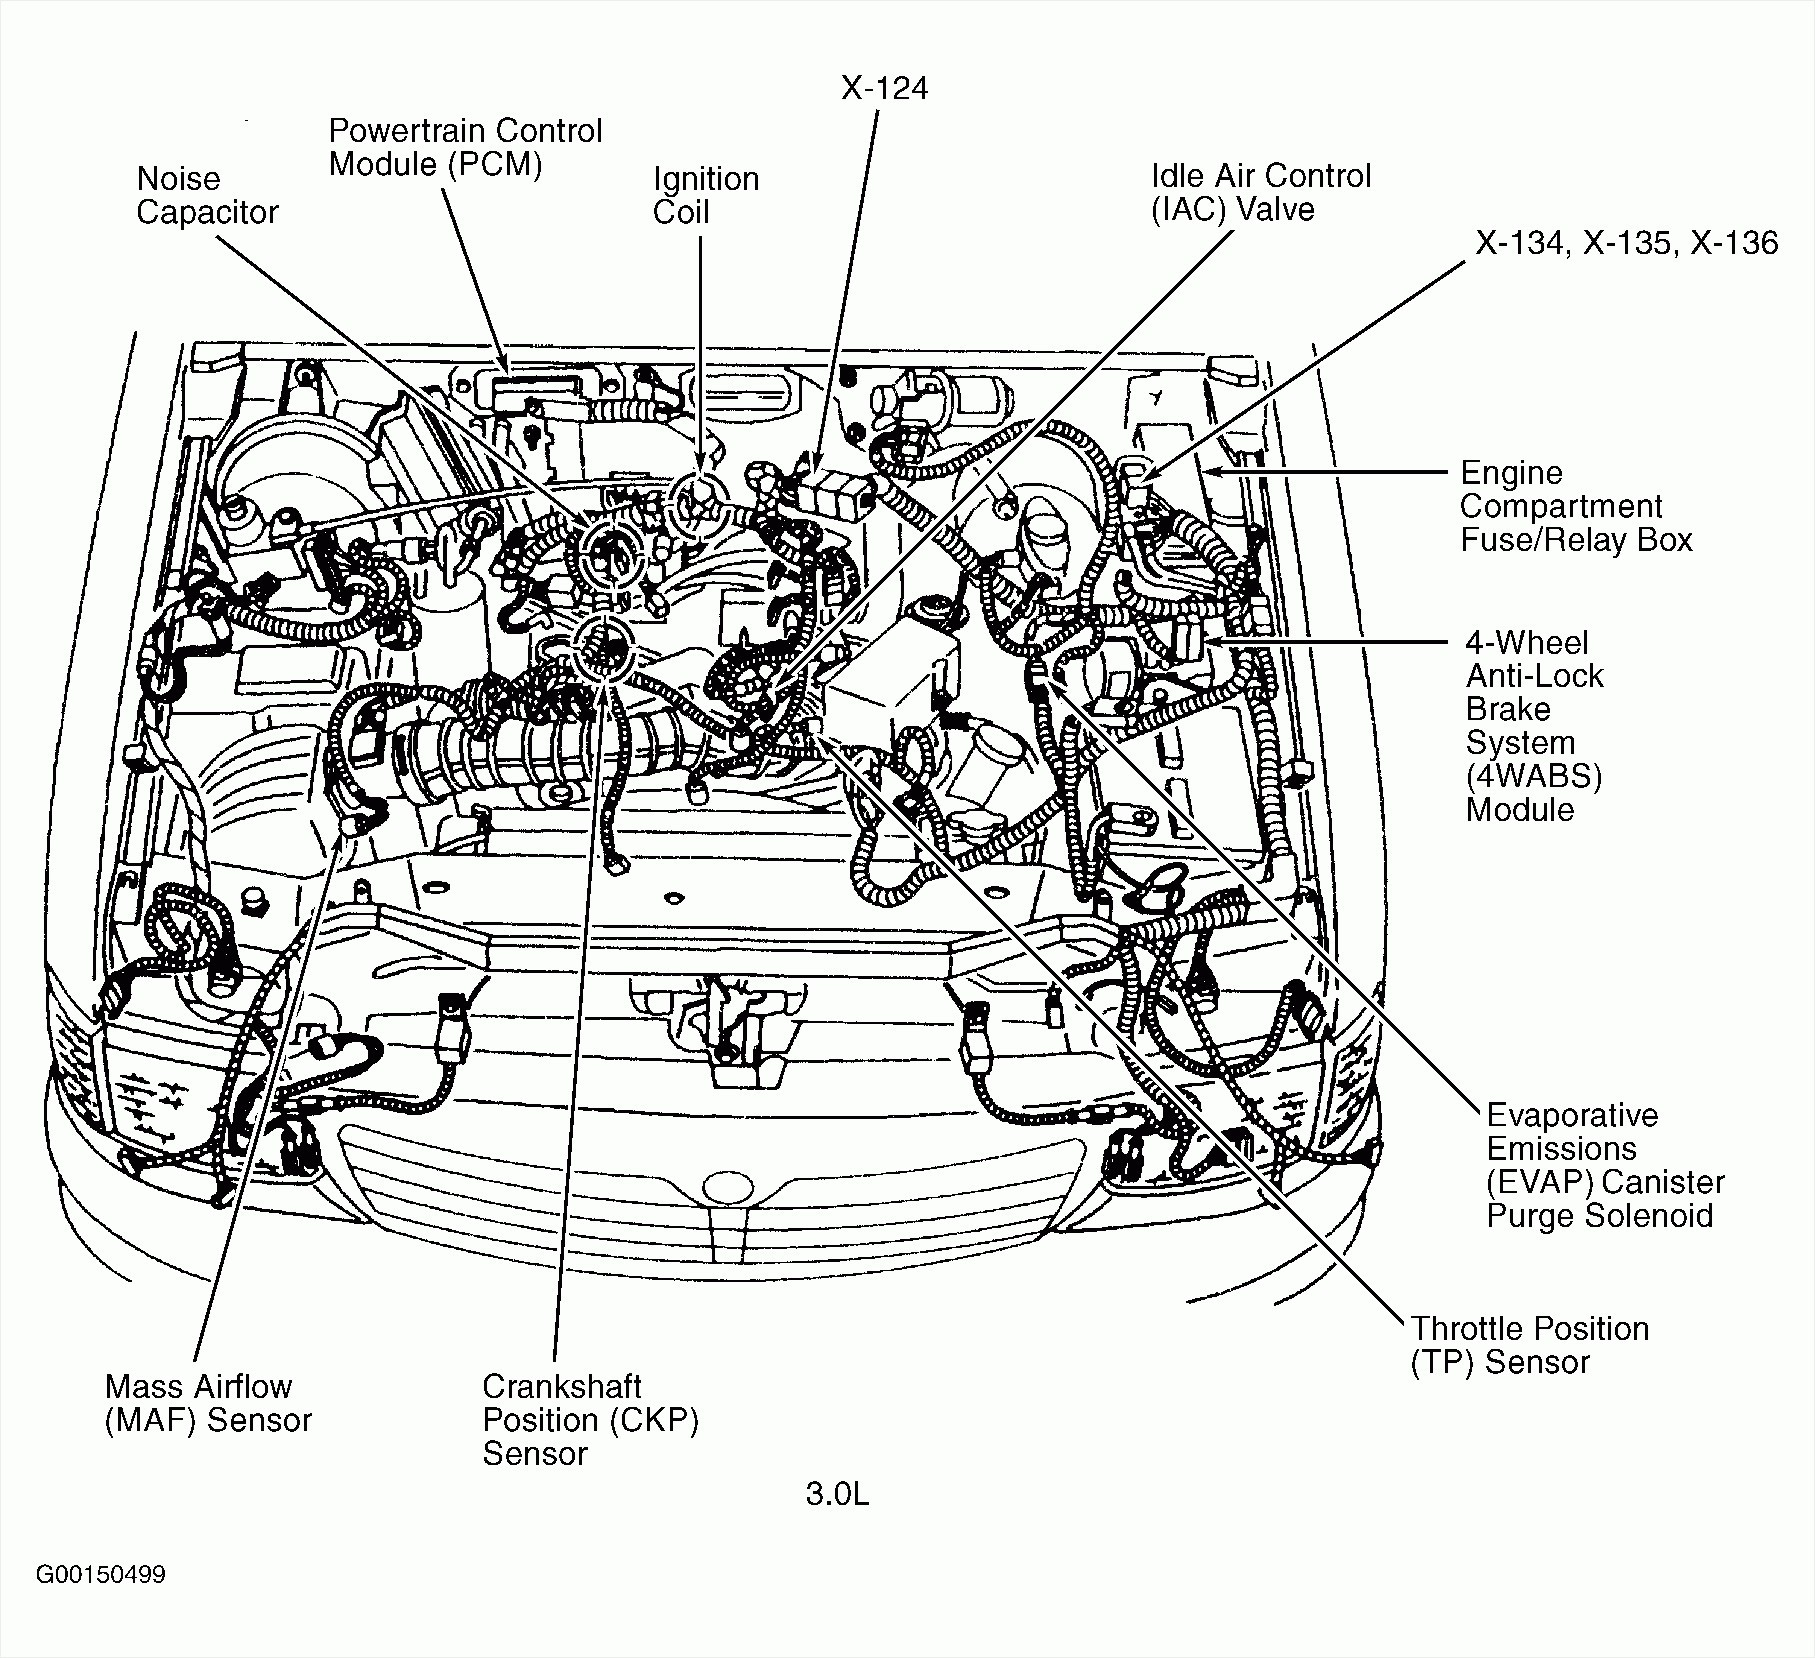 hight resolution of chevy 43 v6 wiring harness wiring diagram data val chevy 4 3 v6 engine diagram